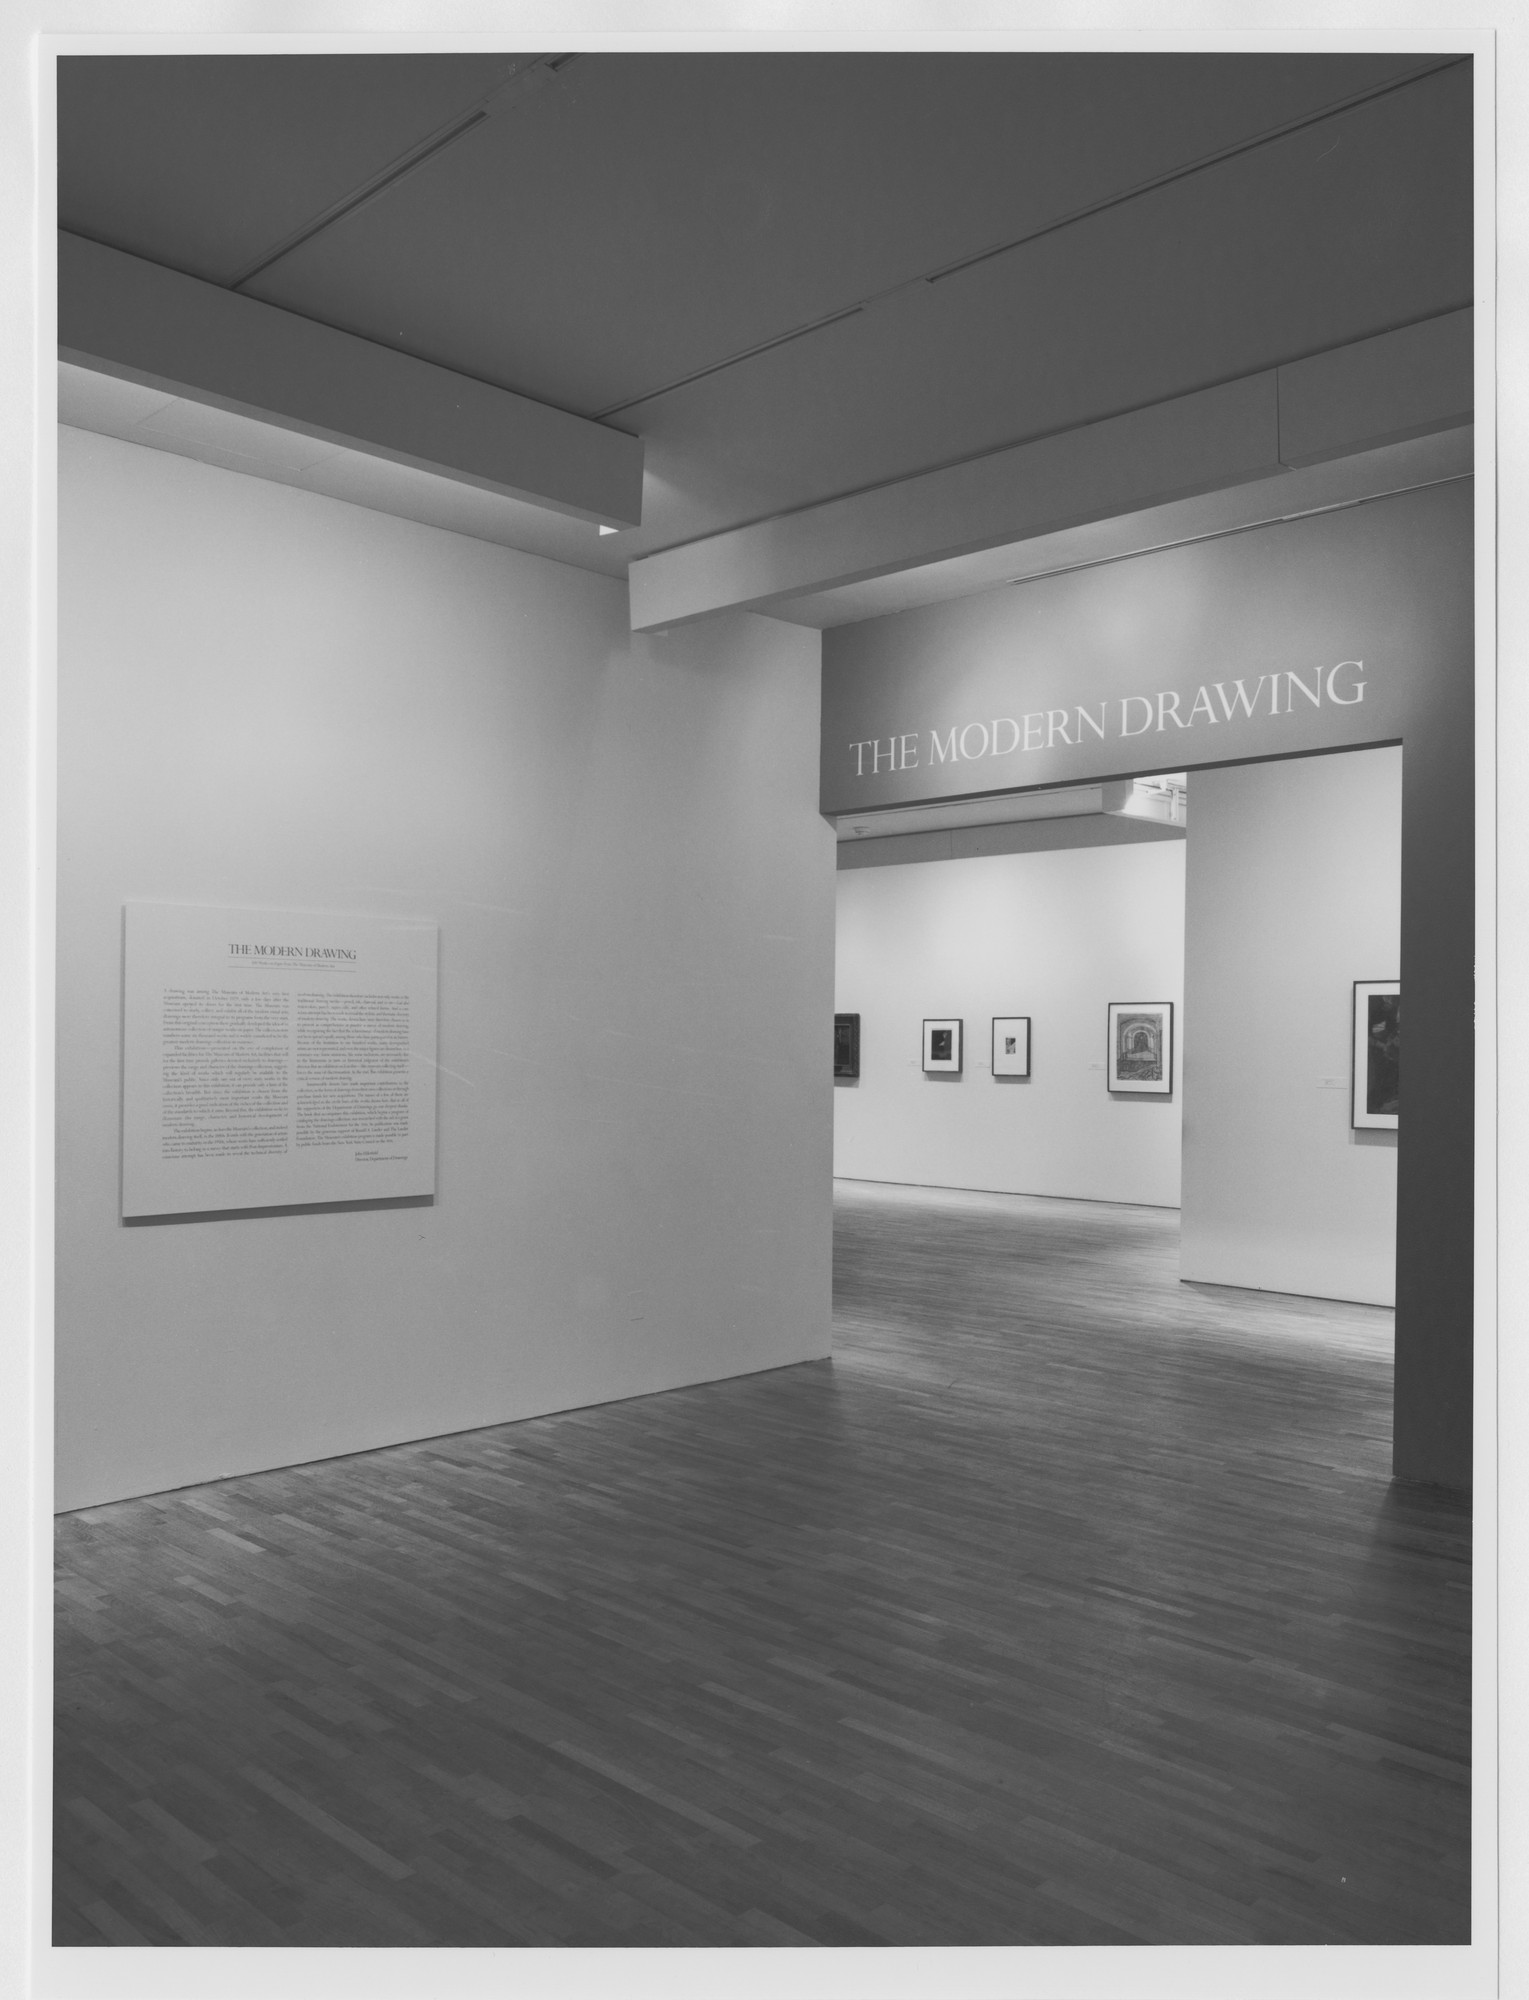 "Installation view of the exhibition, ""The Modern Drawing: 100 Works on Paper"" October 26, 1983–January 3, 1984. Photographic Archive. The Museum of Modern Art Archives, New York. IN1367.1. Photograph by Mali Olatunji."